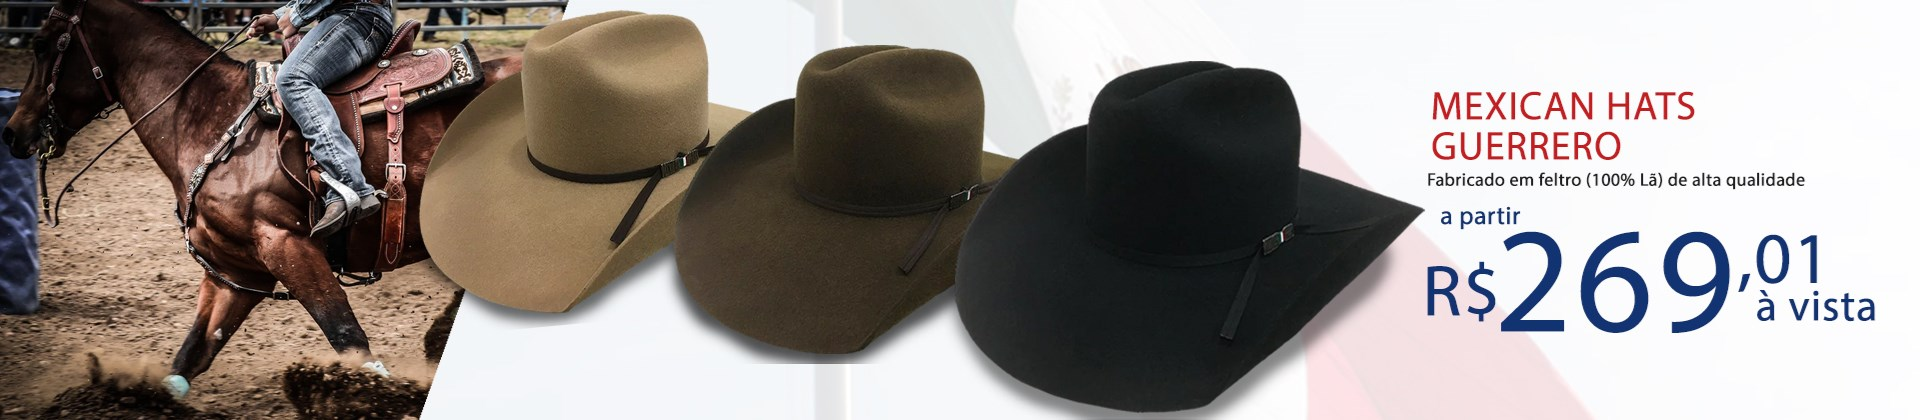 Banner - Mexican Hats